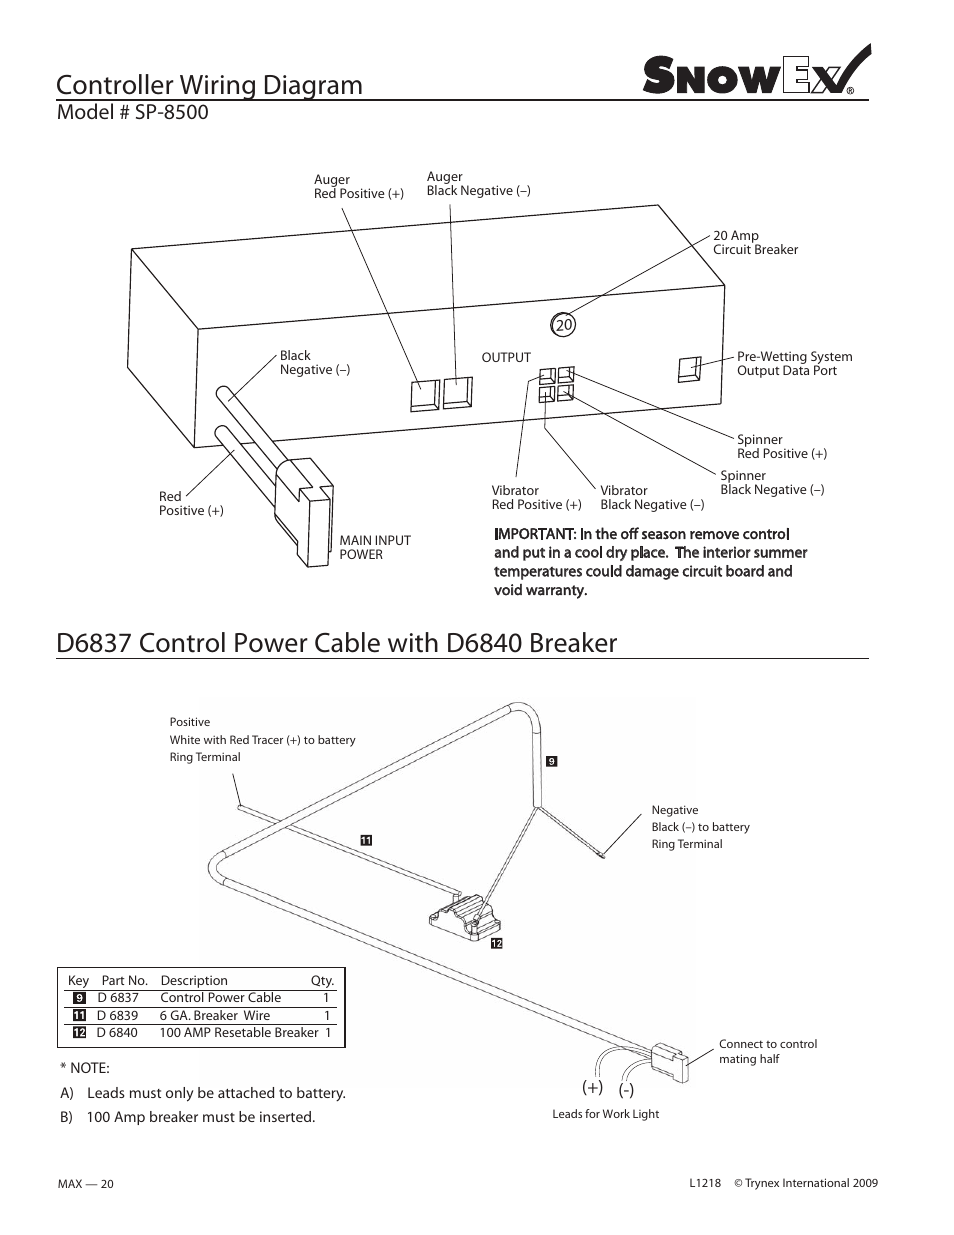 Controller Wiring Diagram Model Sp 8500 Snowex User 20 Amp Manual Page 18 34